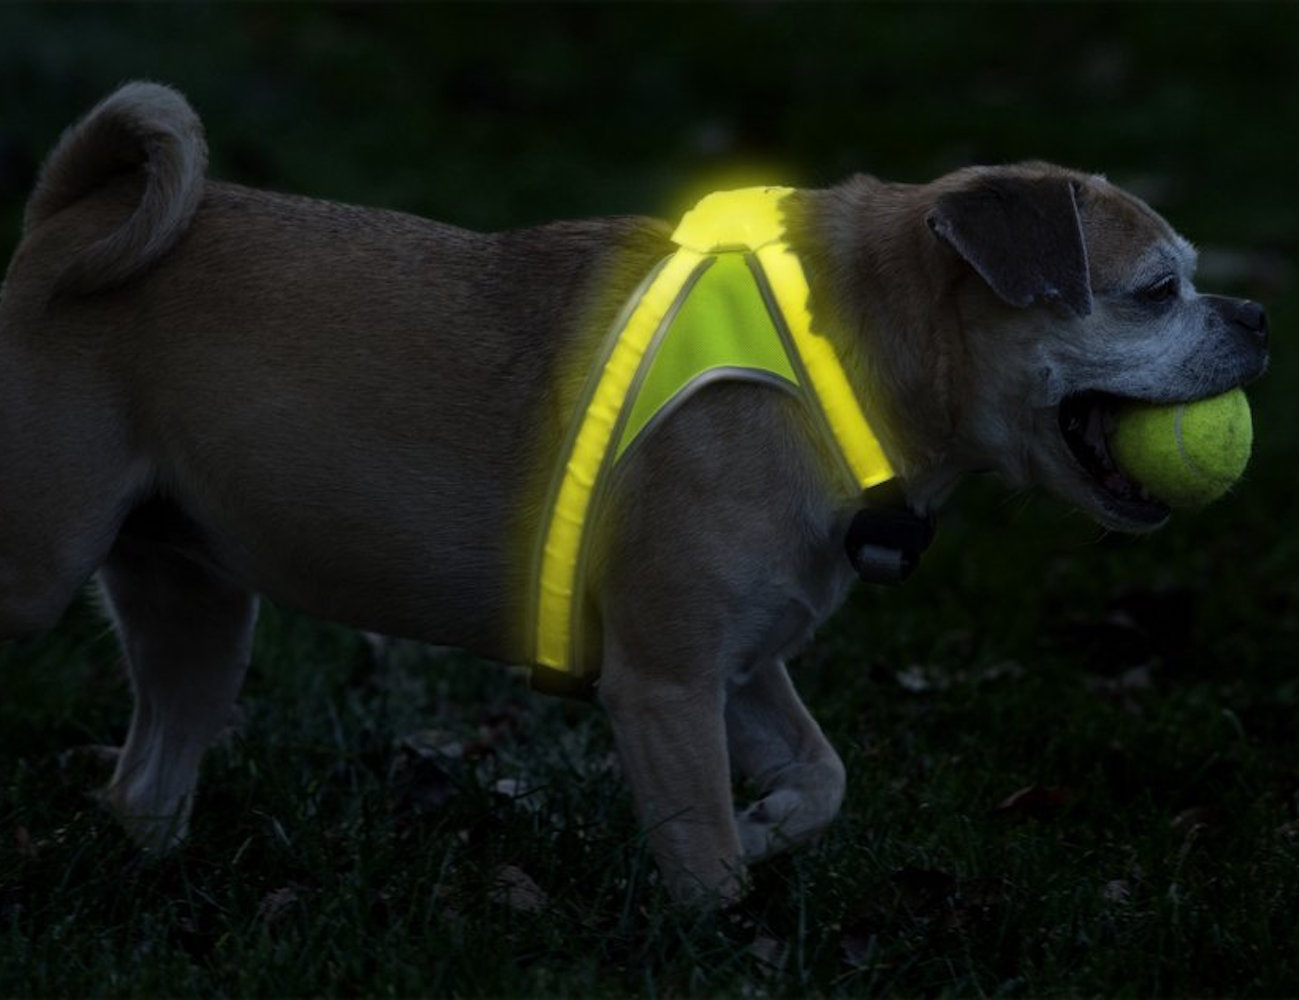 Noxgear LightHound dog vest